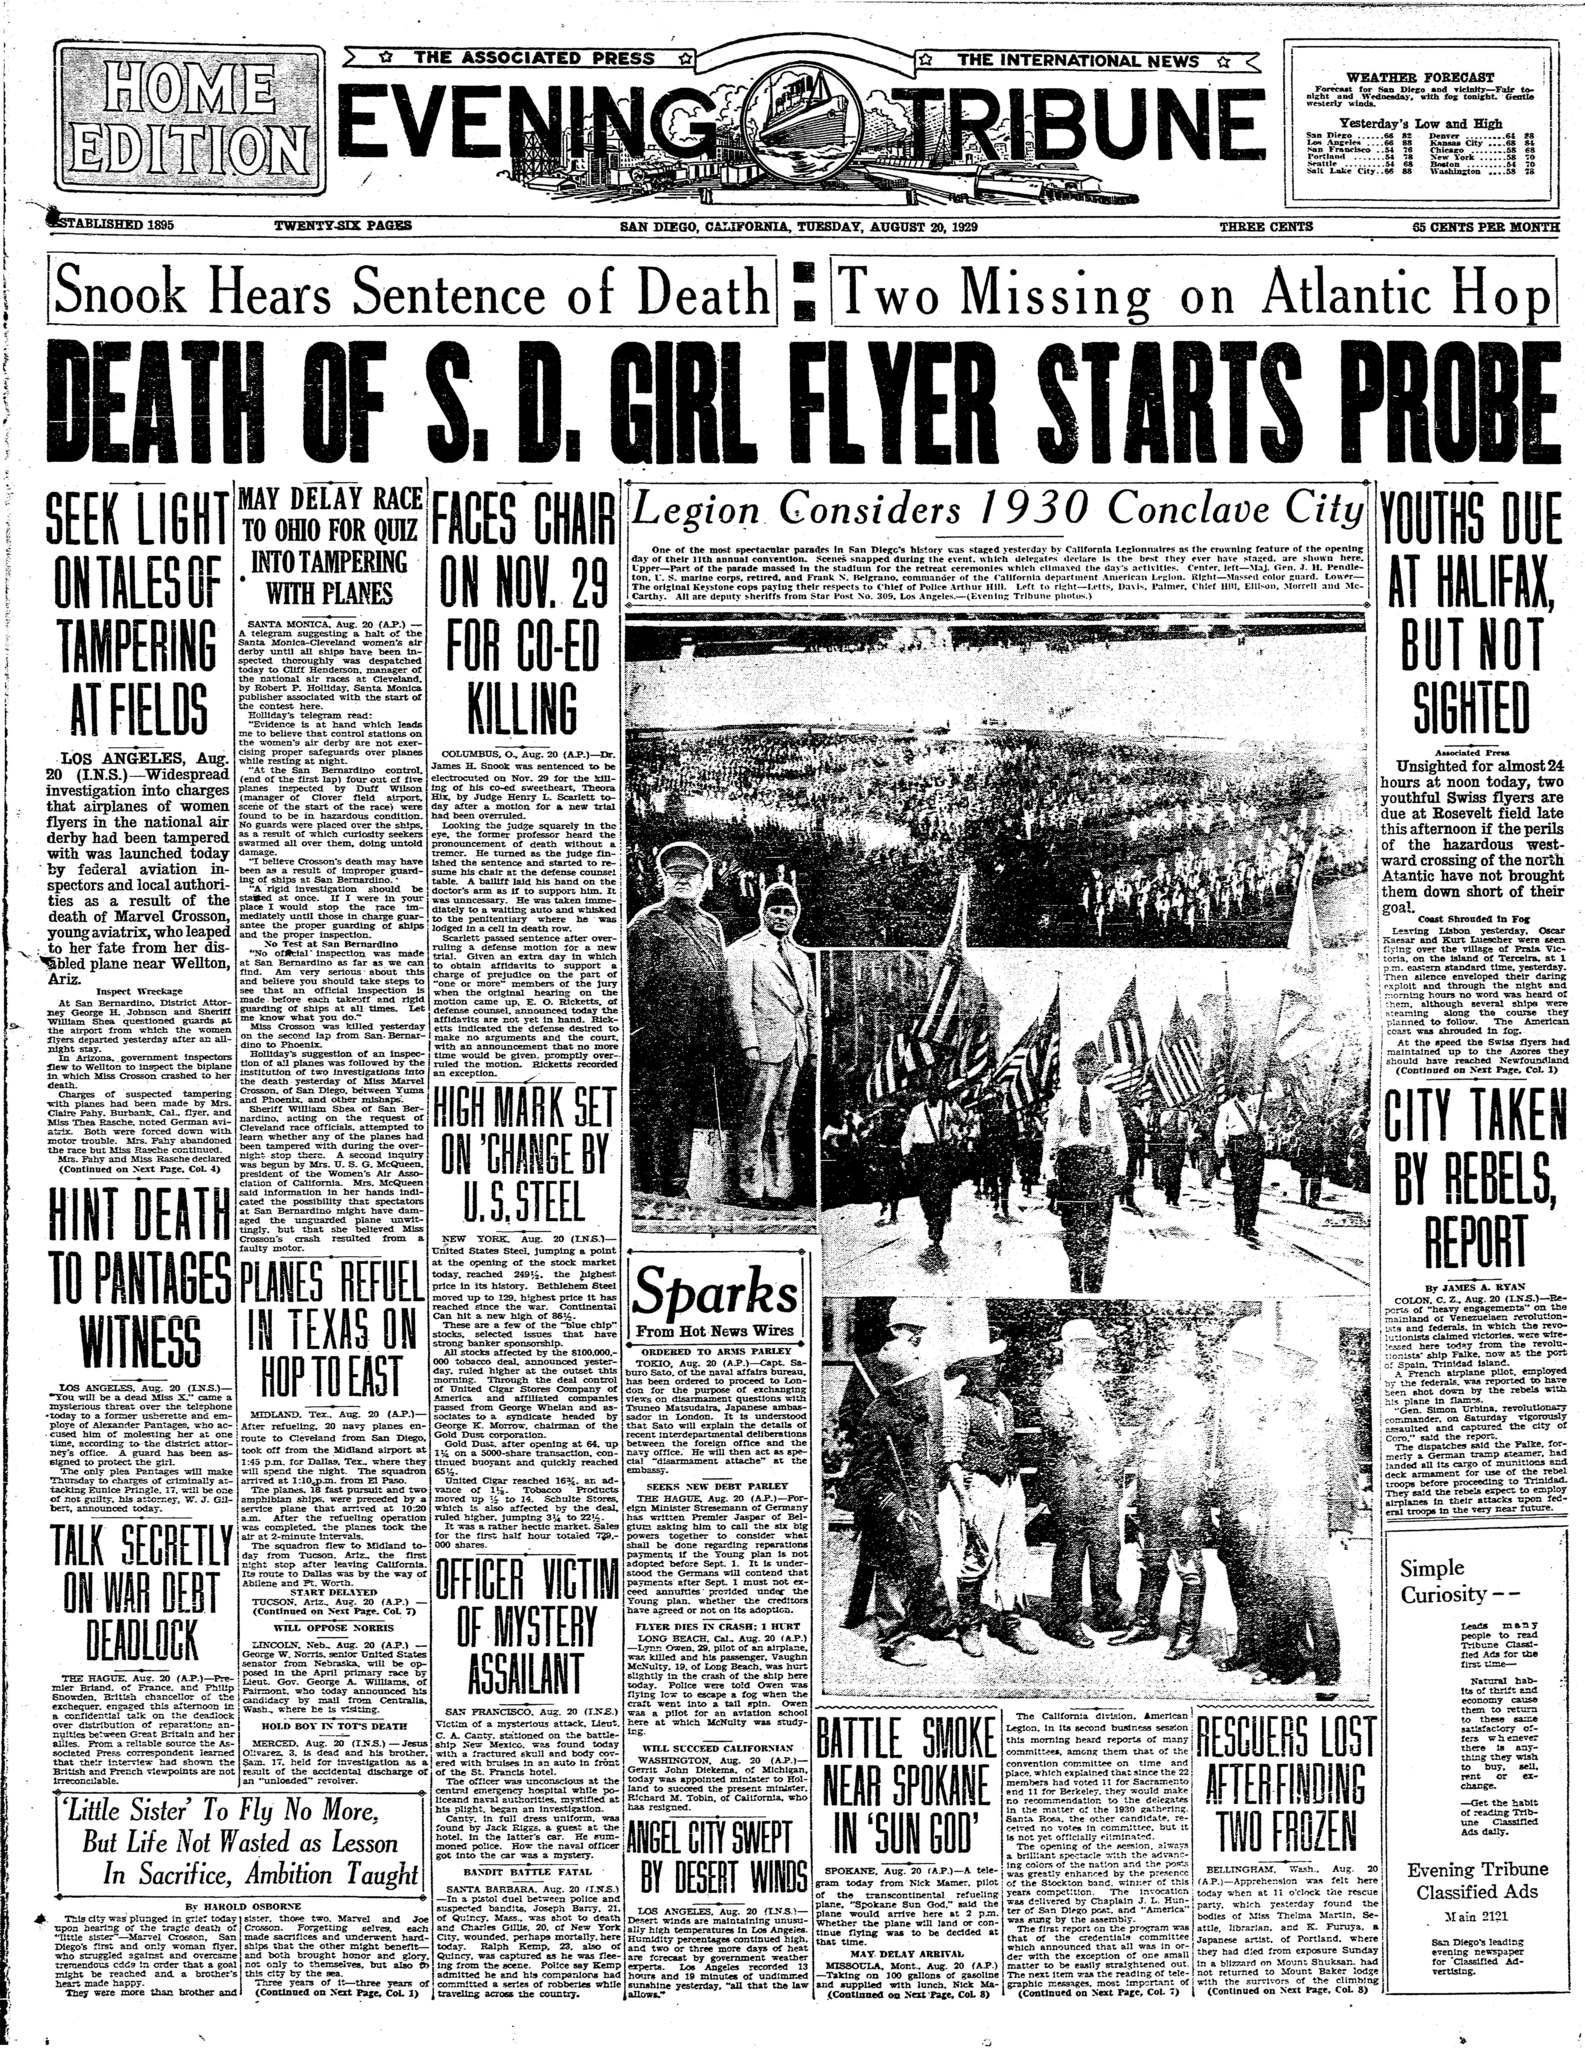 August 20, 1929